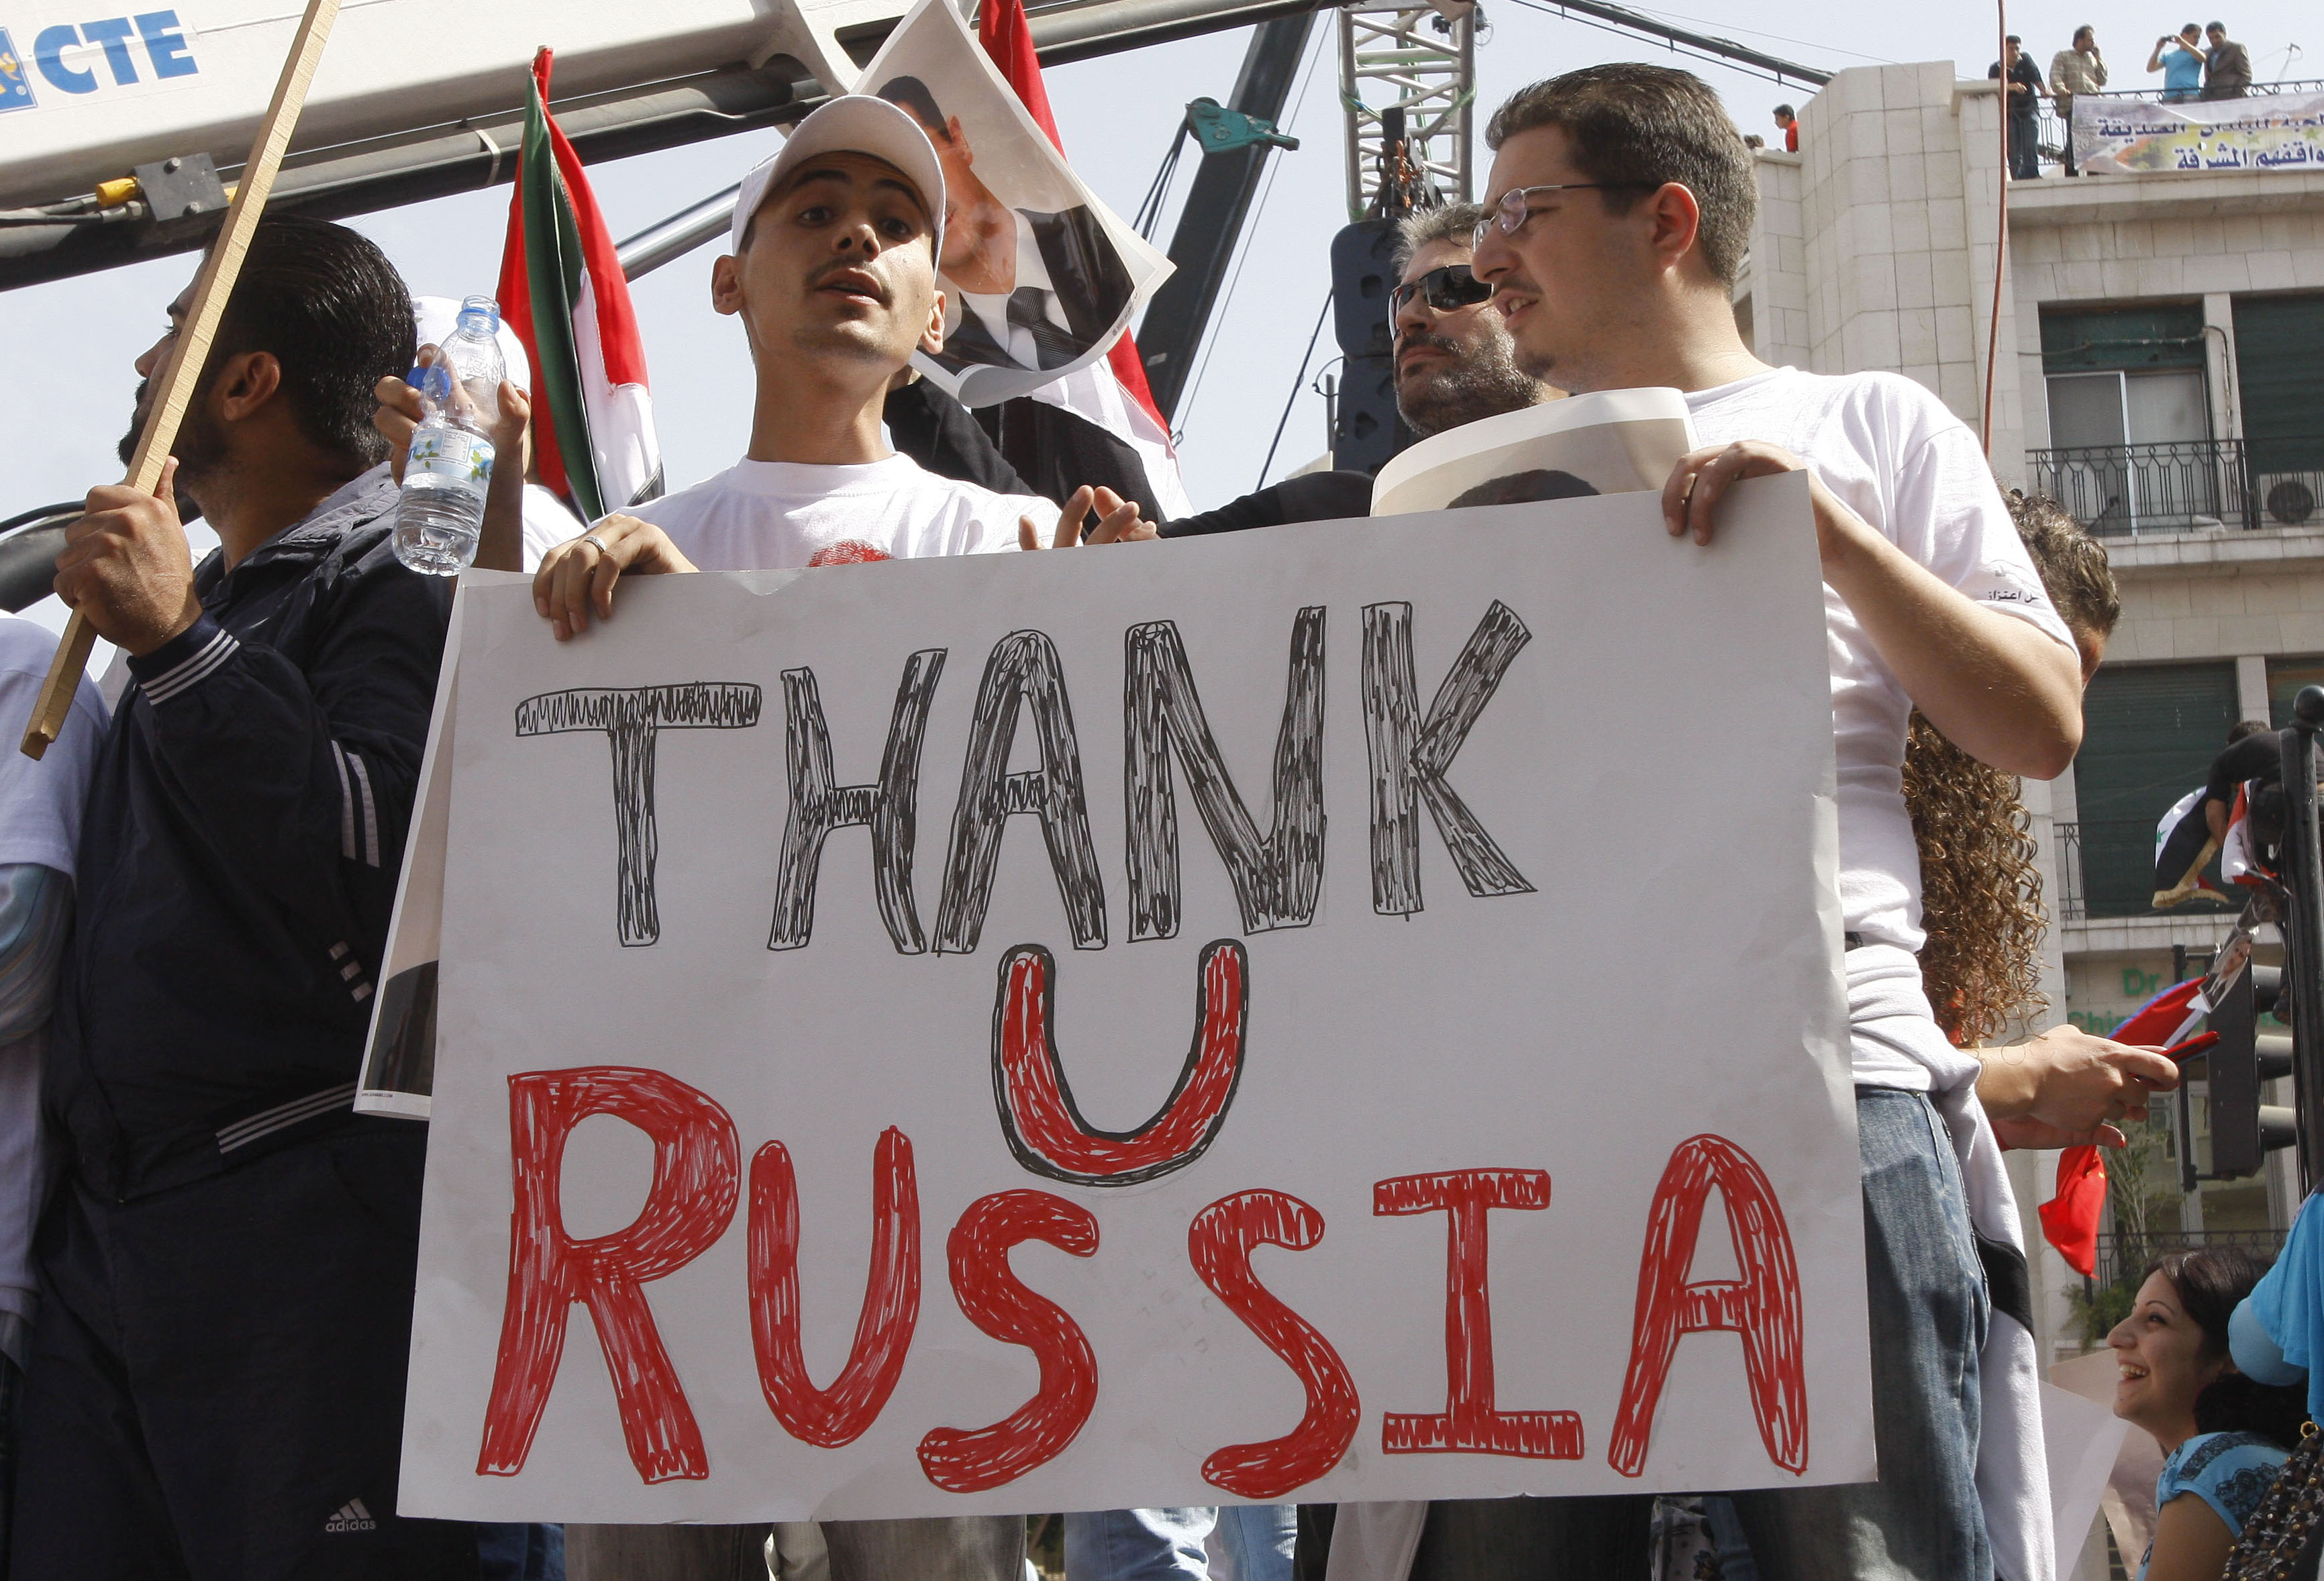 FILE - In this Oct. 12, 2011 file photo, supporters of the Syrian government hold a pro-Russian banner as they show their support for Syrian President Bashar Assad and to thank Russia and China for blocking a U.N. Security Council resolution condemning Syria for its brutal crackdown, during a demonstration in Damascus, Syria. Russian President Vladimir Putin is winning plaudits from many Syrians and Iraqis, who see Russia's military intervention in Syria as a turning point after more than a year of largely ineffectual efforts by the U.S.u0096led coalition battling the Islamic State group. (AP Photo/Muzaffar Salman, File)